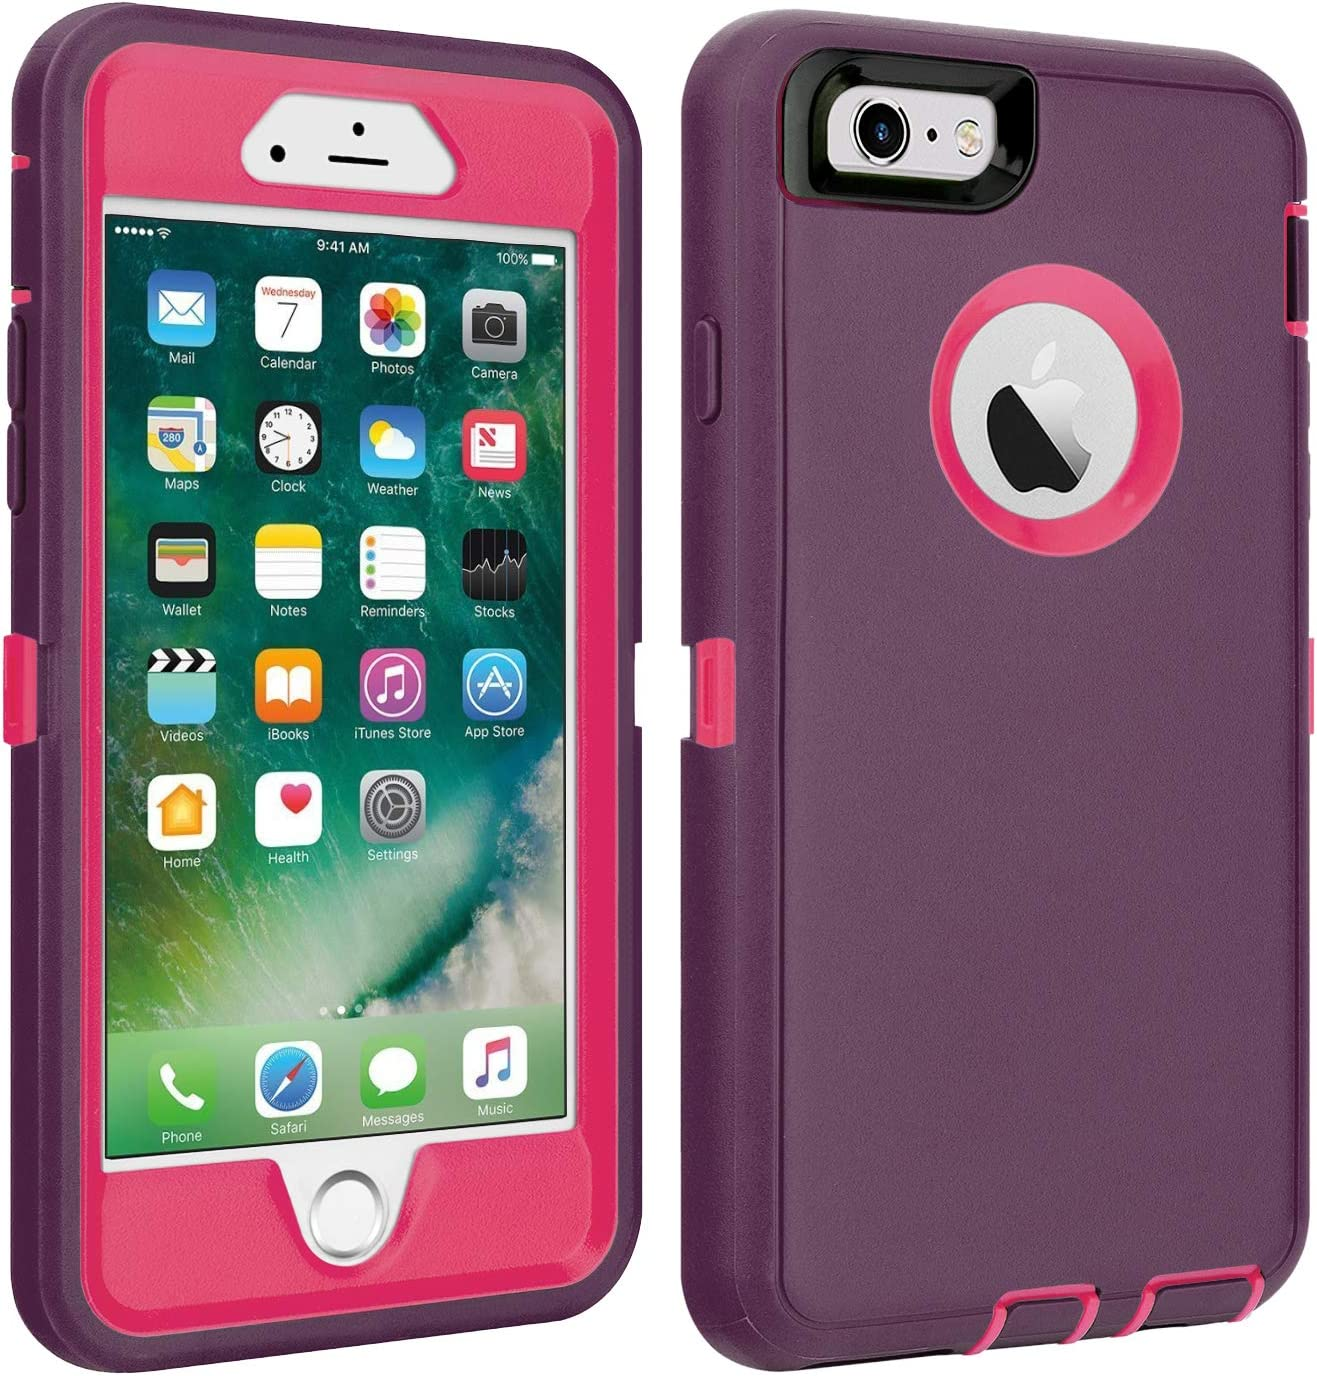 "CAFEWICH iPhone 6/6S Case Shockproof High Impact Tough Rubber Rugged Hybrid Case Silicone Triple Protective Anti-Shock Shatter-Resistant Mobile Phone for iPhone 6/6S 4.7"" (Wine/Rosered)"